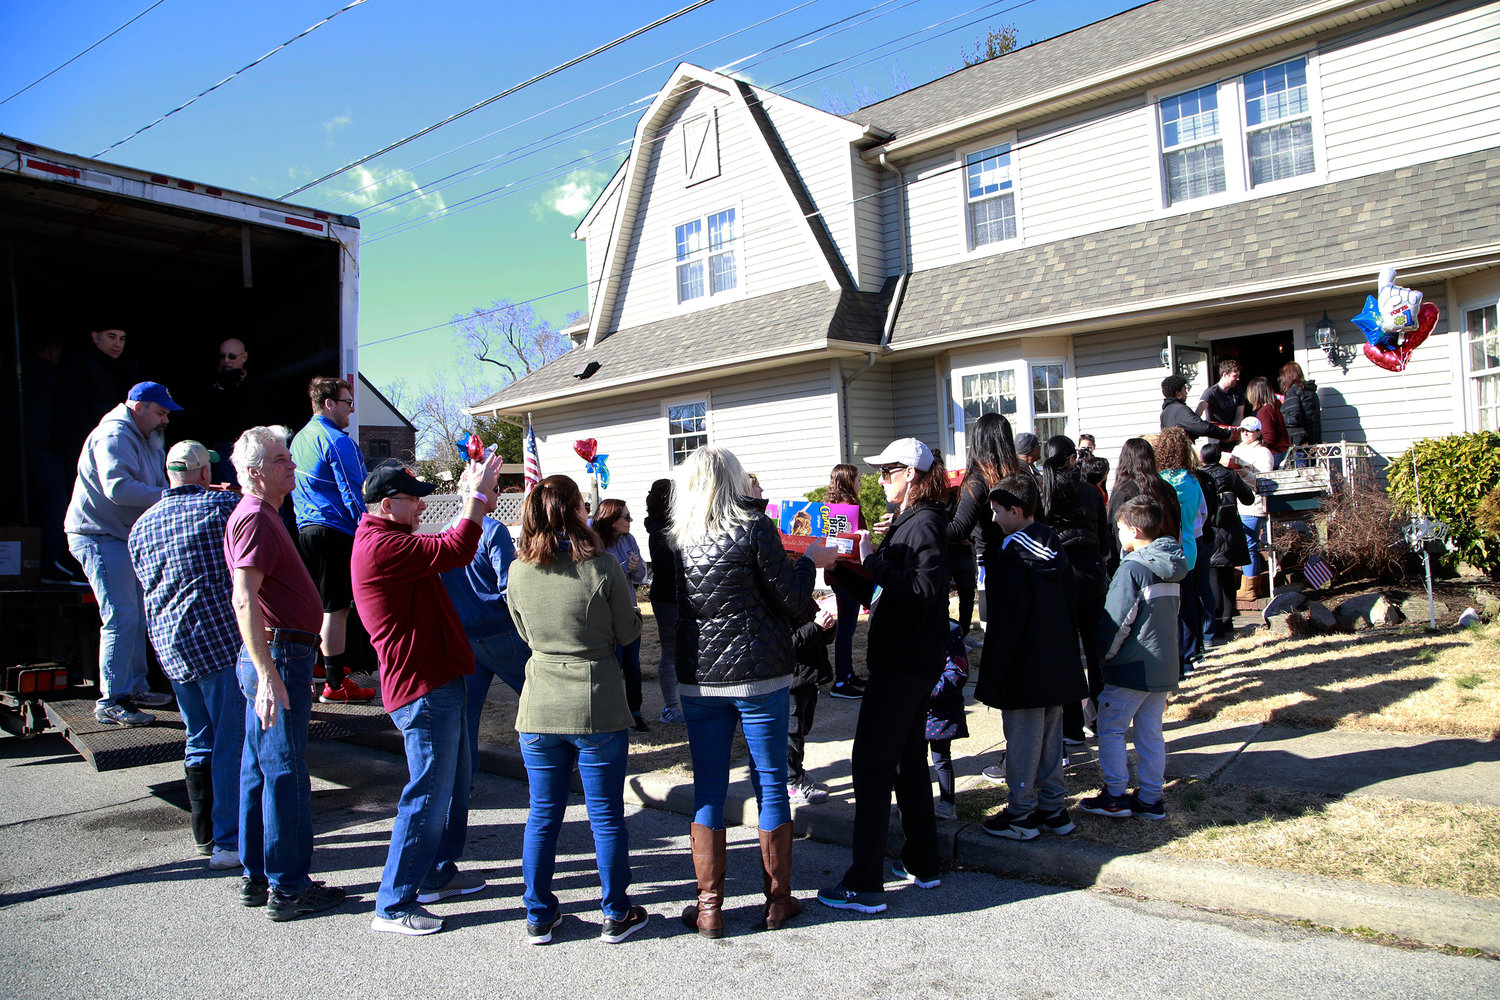 The Hallam home in Lynbrook was crowded with volunteers on March 16 as they teamed up to fill a truck with donated food.